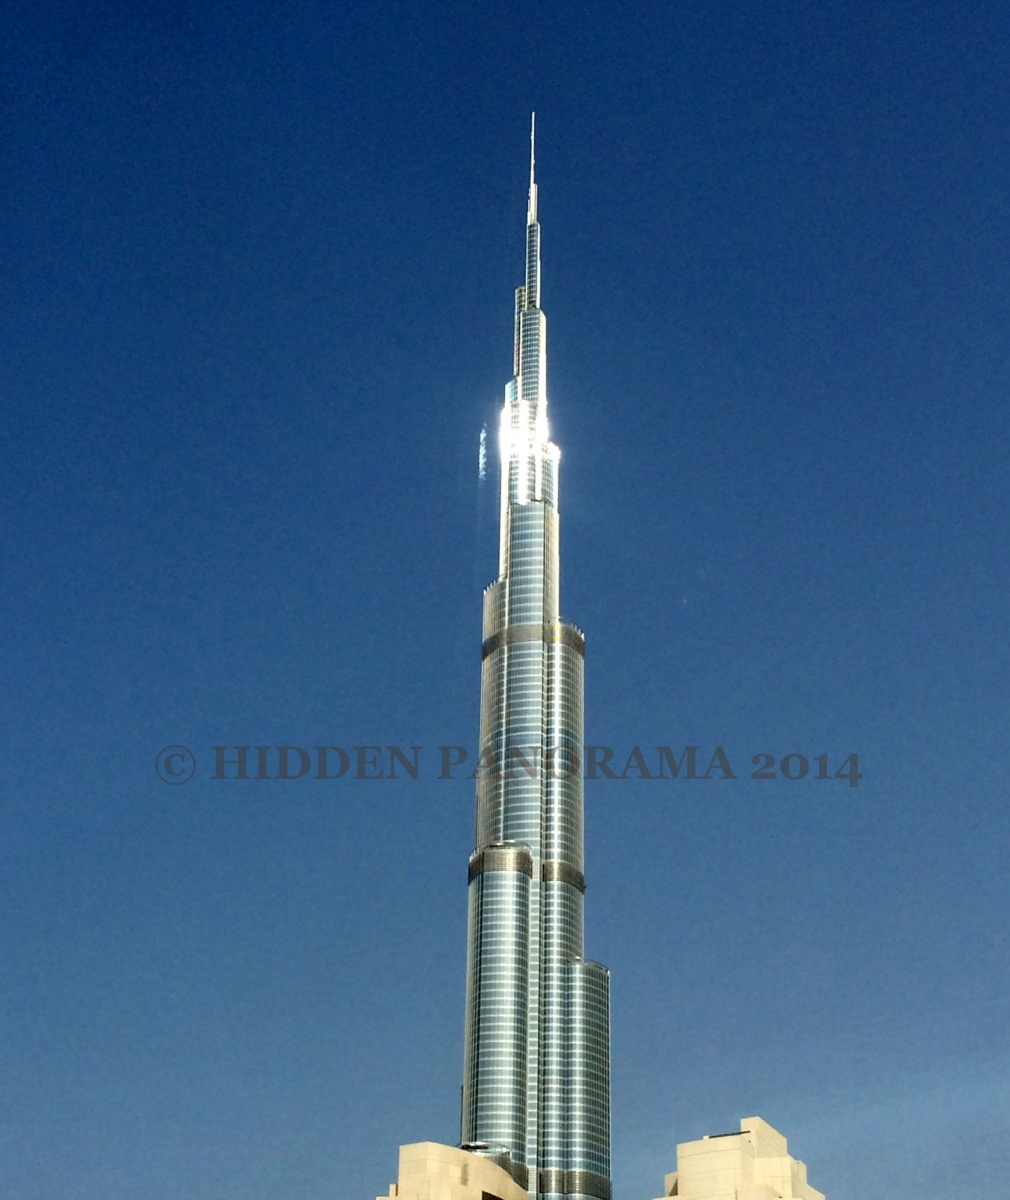 Burj Khalifa - Tallest Building In The World And Surrounding Area